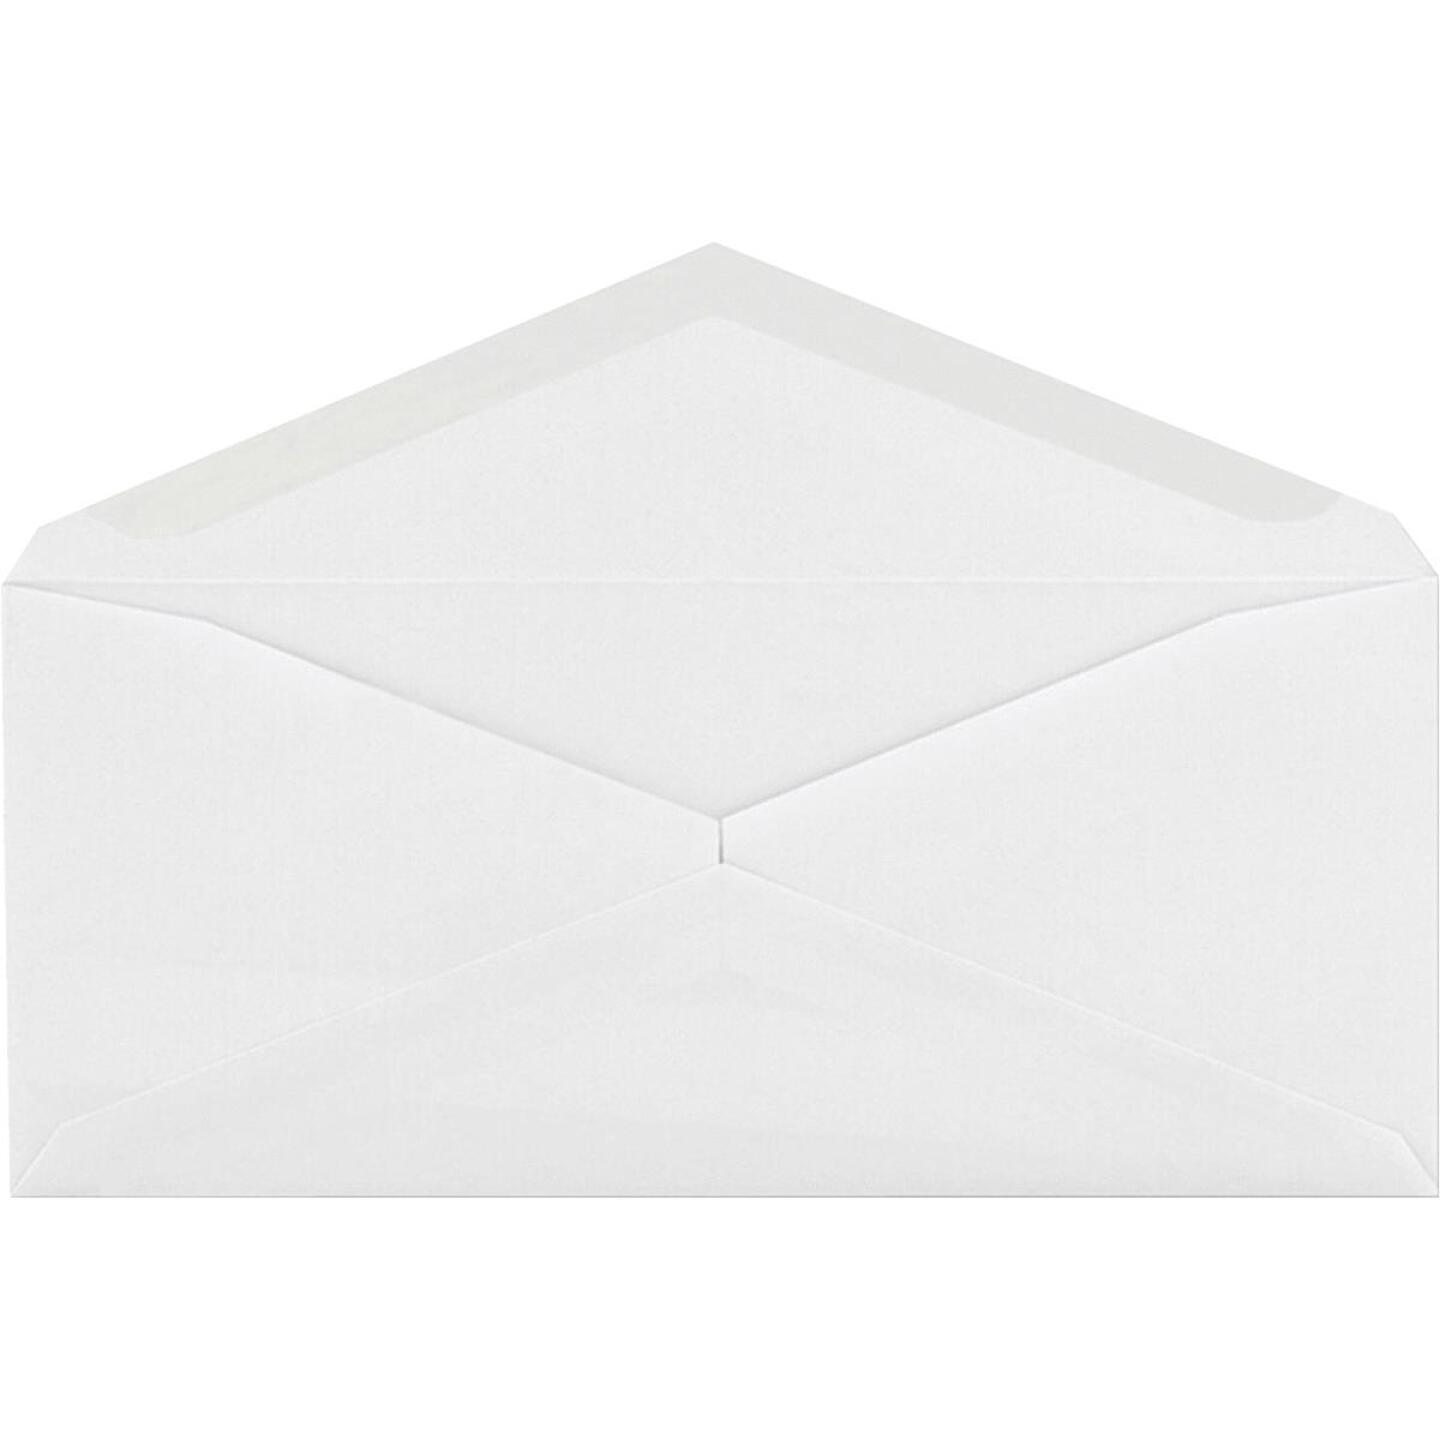 Quality Park Columbian No. 10 4-1/8 In. x 9-1/2 In. White Envelopes (100-Pack) Image 1